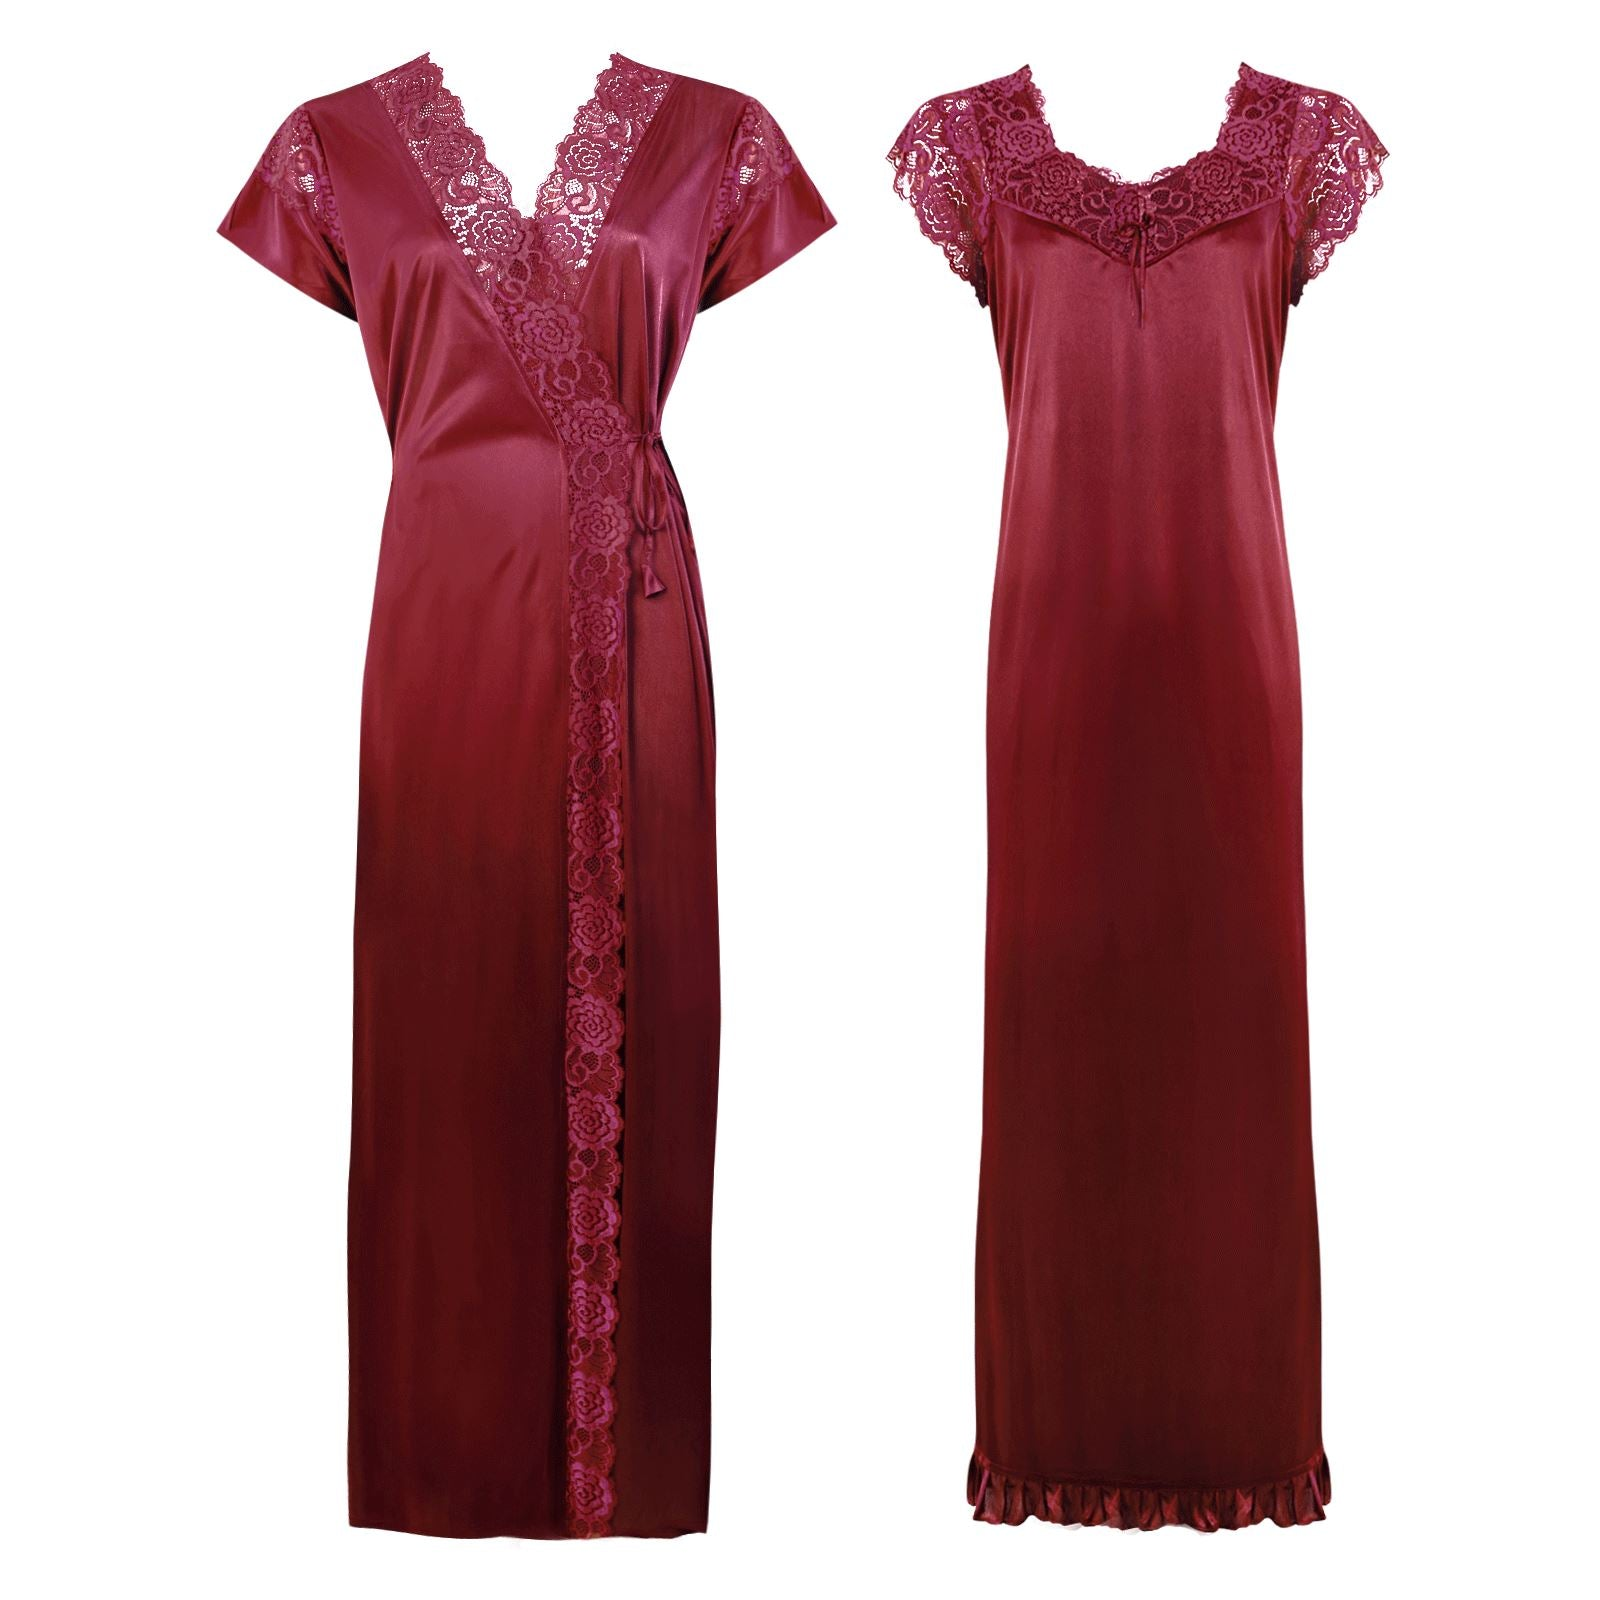 Color: Ruby 2 Pc Satin Lace Nighty and Robe Size: One Size: Regular (8-14)